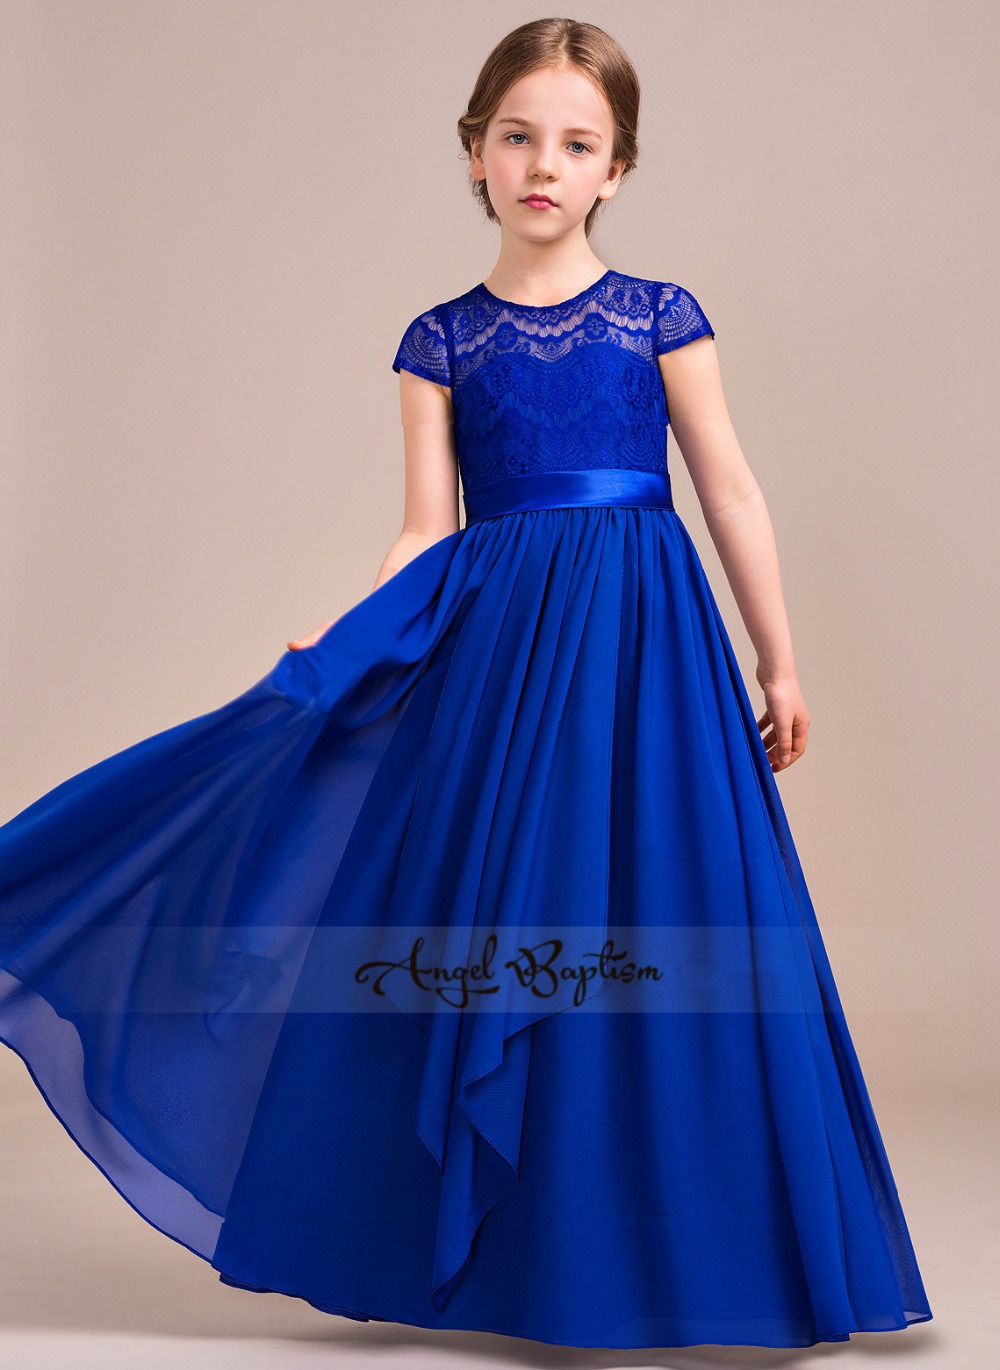 Royal blue chiffon A-Line sheer lace Junior Bridesmaid girl dress for wedding Piano and violin performing gown with bow ruffles how to plan a wedding for a royal spy